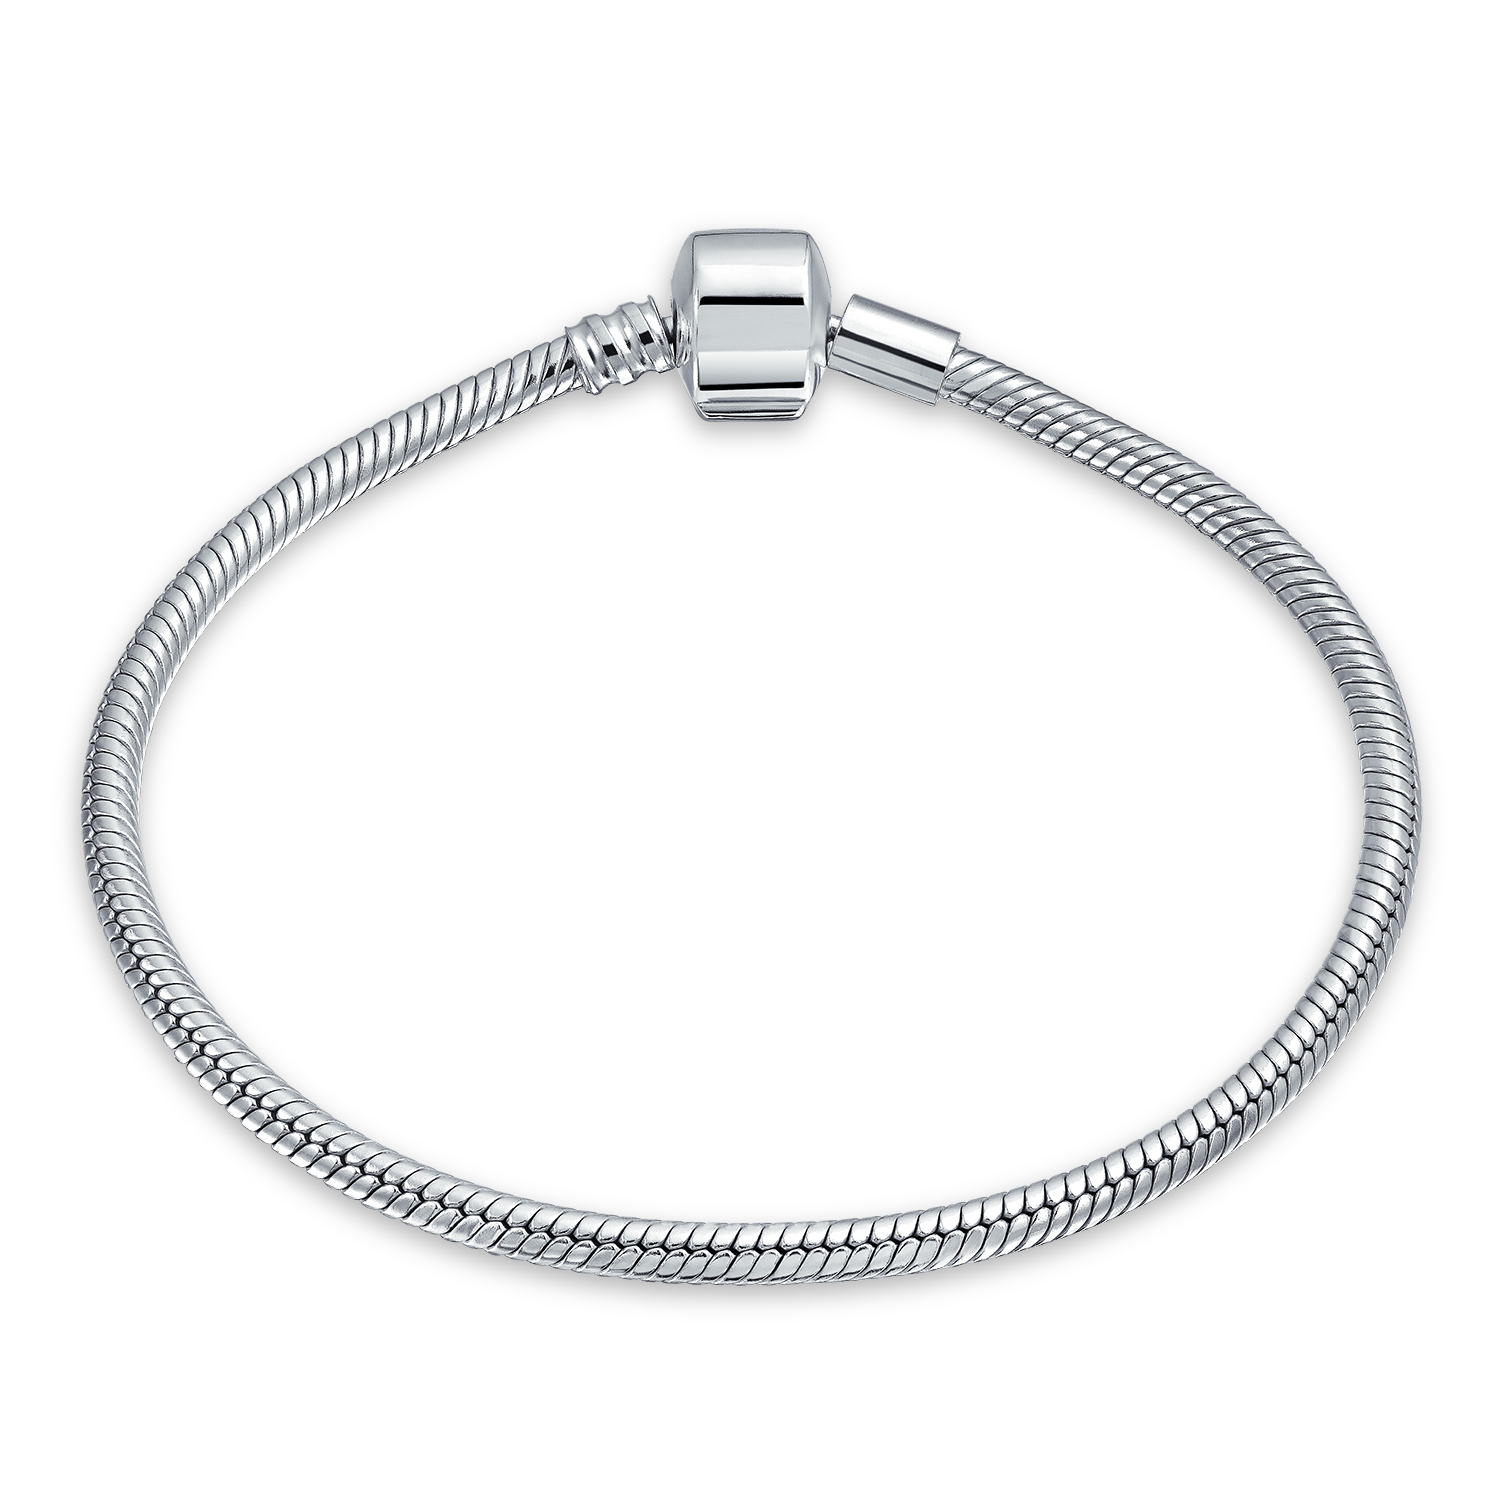 9 INCH EUROPEAN CHARM SNAKE CHAIN BRACELET FOR BEAD .925 SILVER ROUND CLASP R9